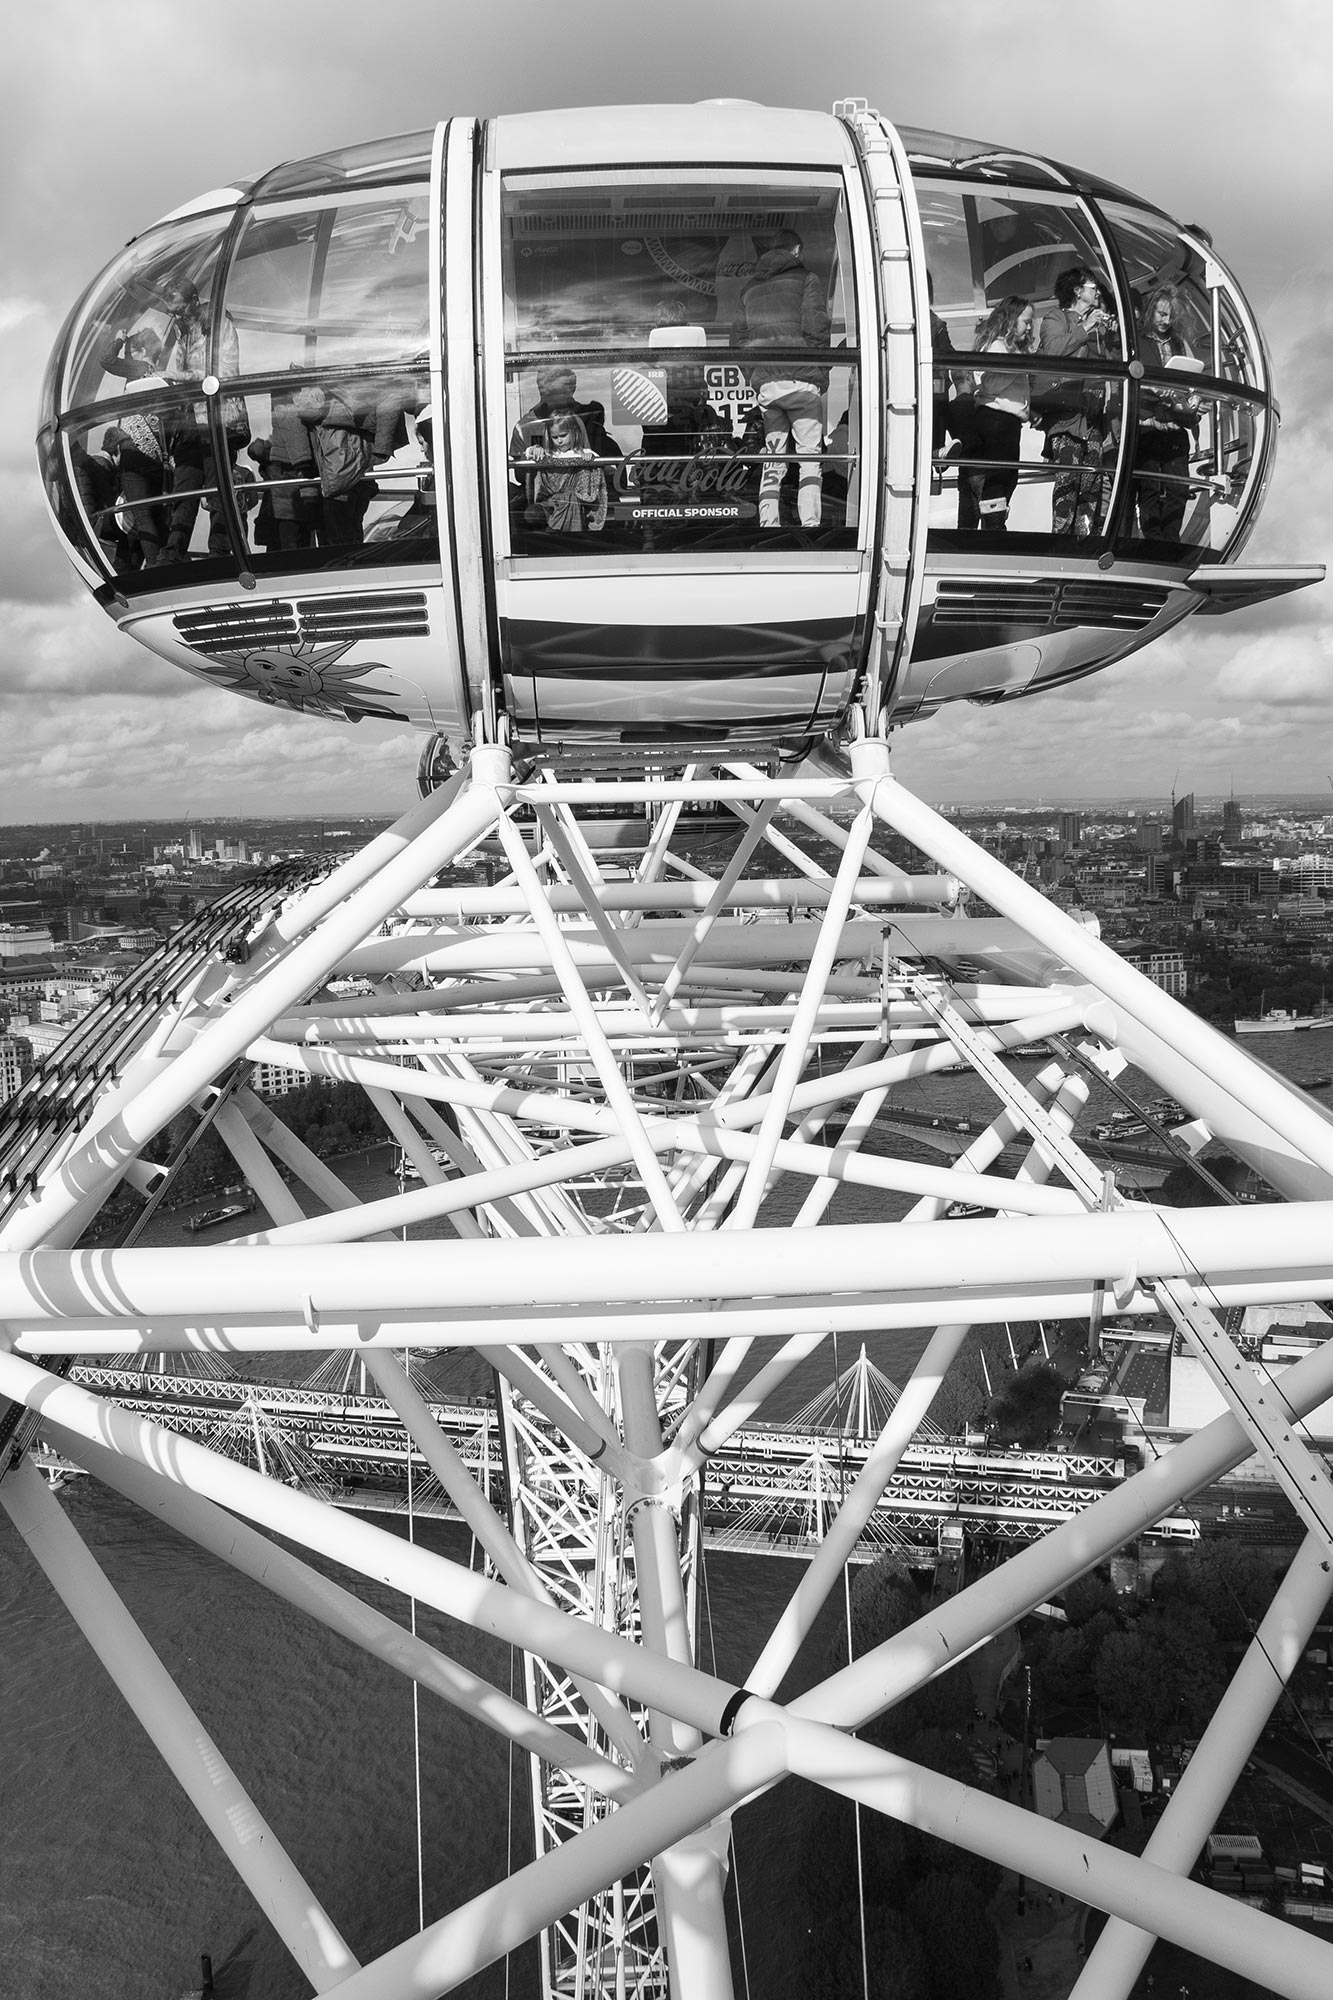 Eye In The Sky 2 - London, England